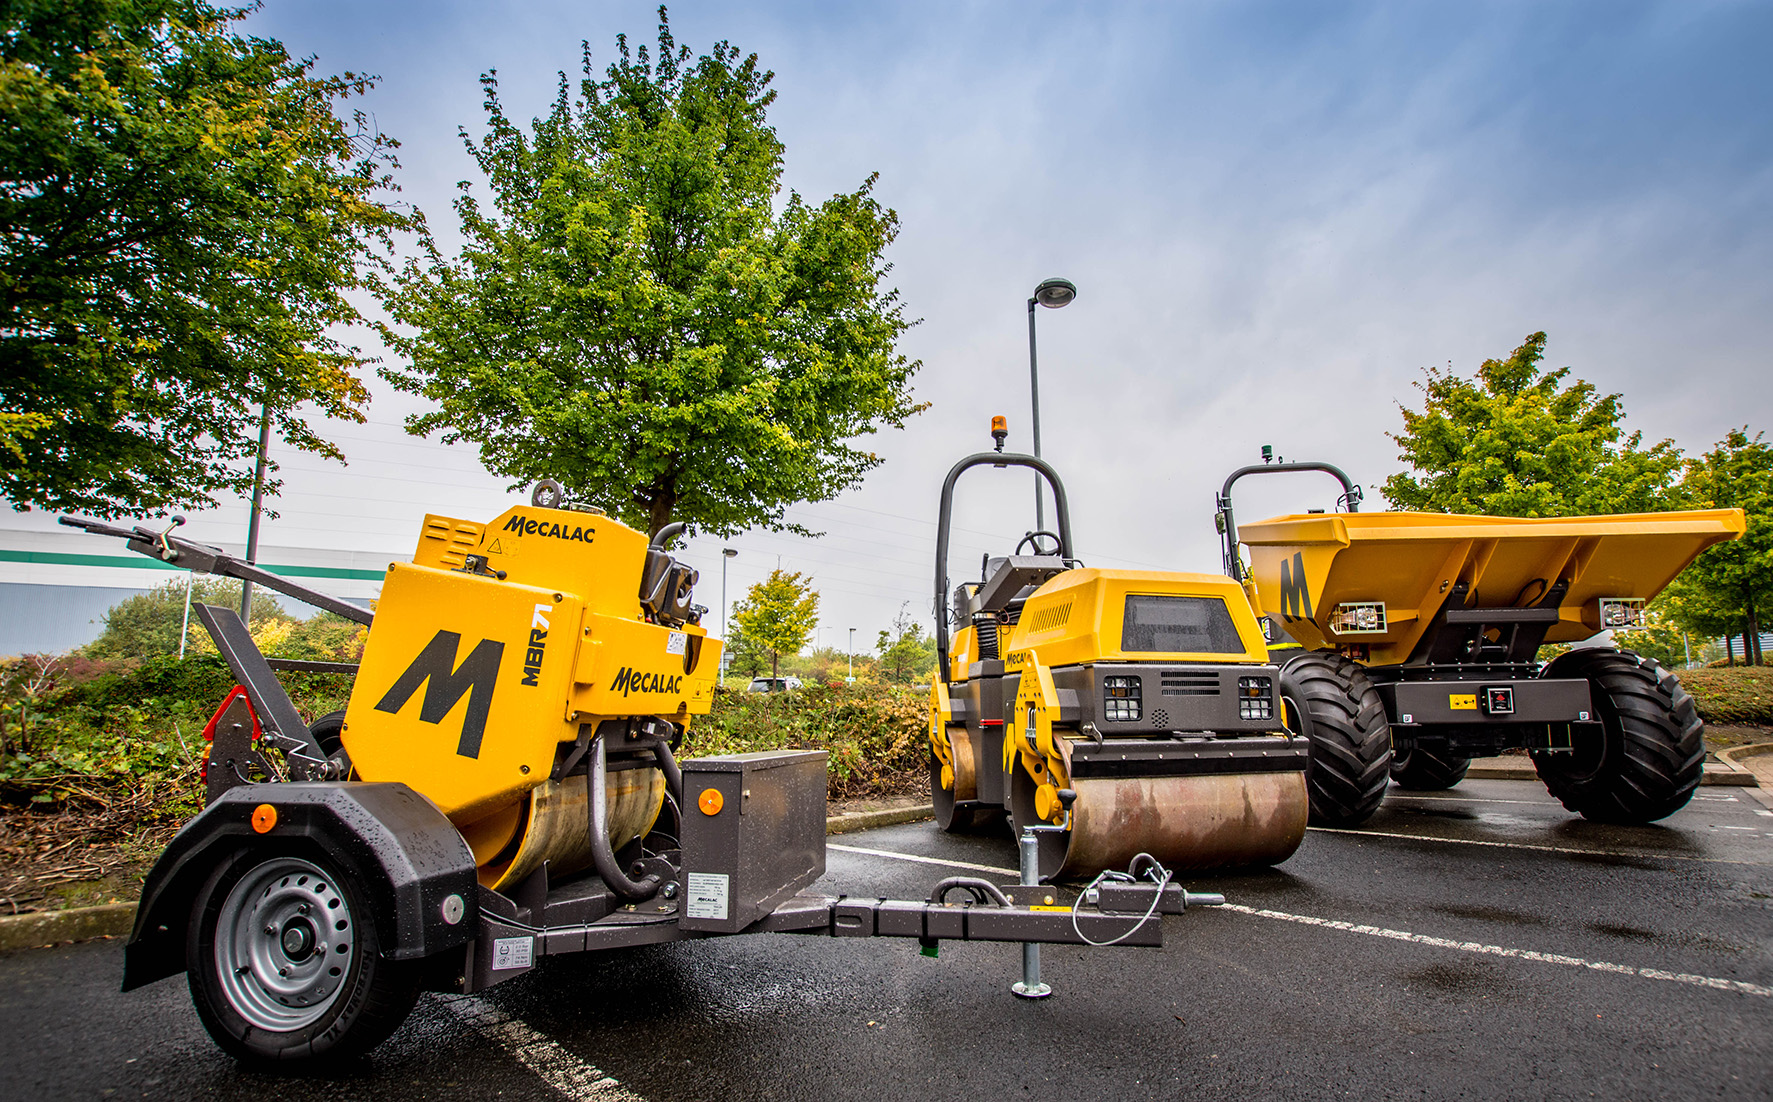 Mecalac dumper and compaction equipment